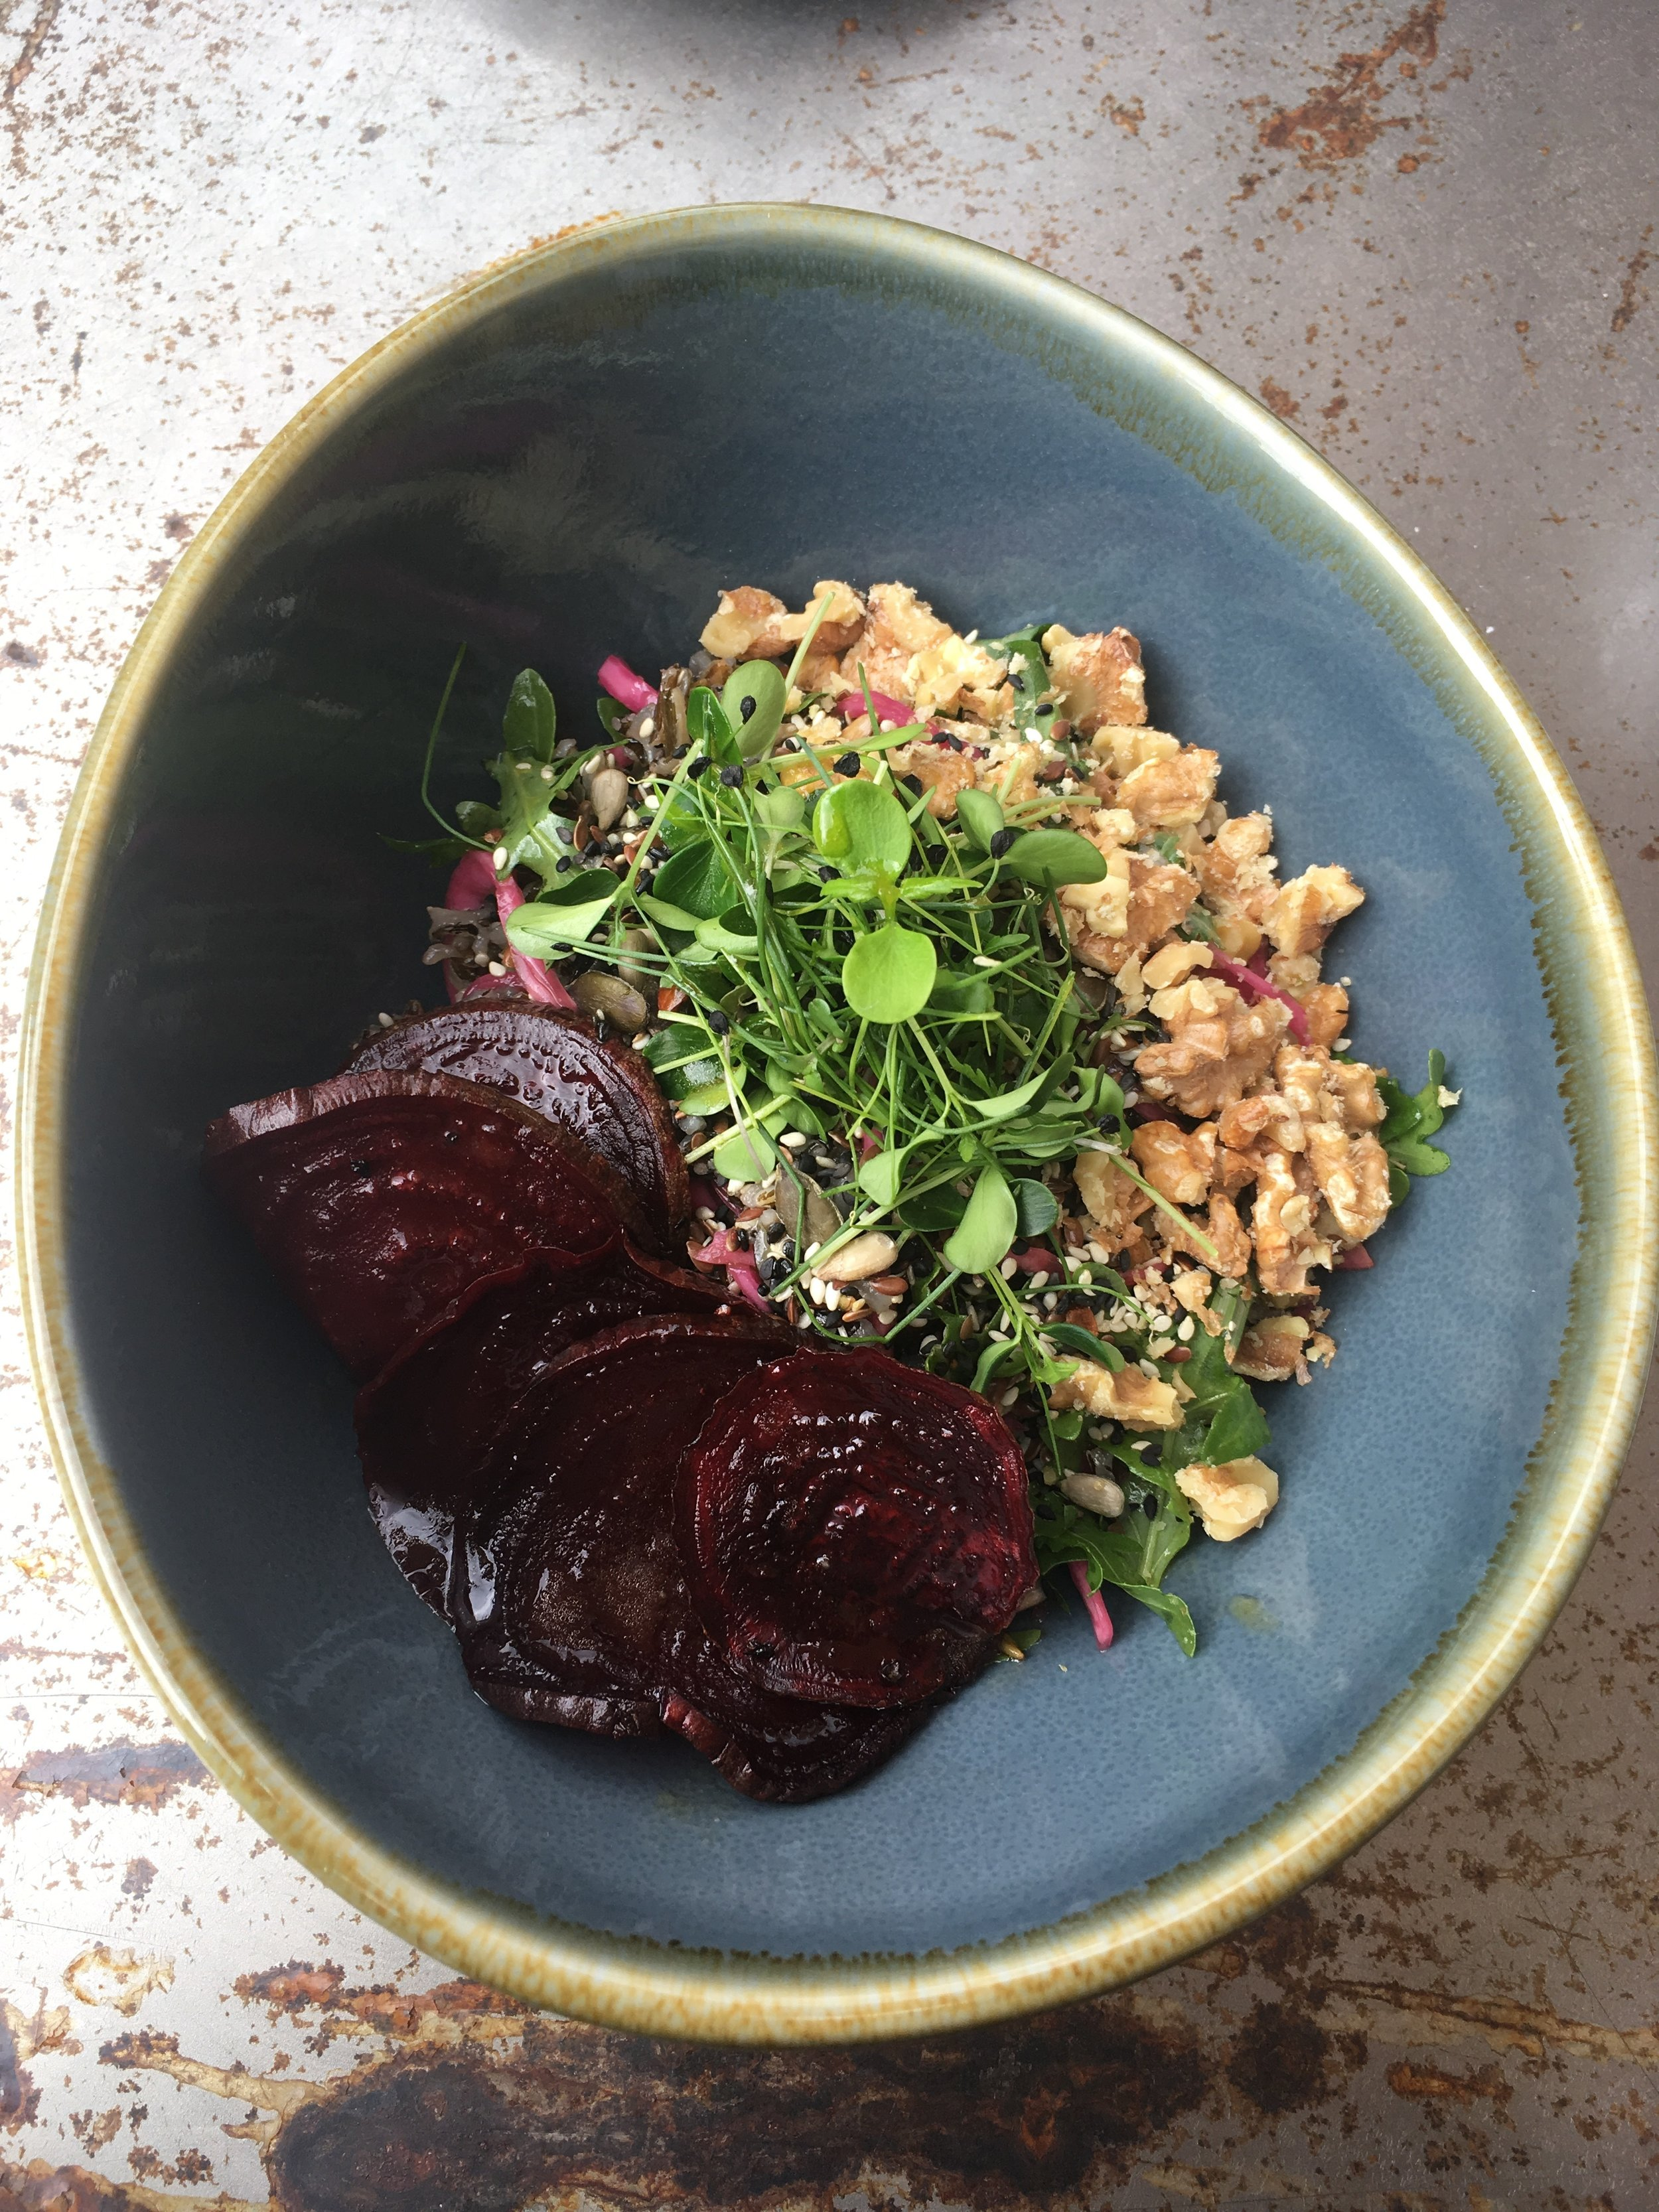 It's a bowl dish at 19 Grams Berlin, with sauerkraut, seeds, walnuts, rockets, black rice and roasted pepper beetroot.